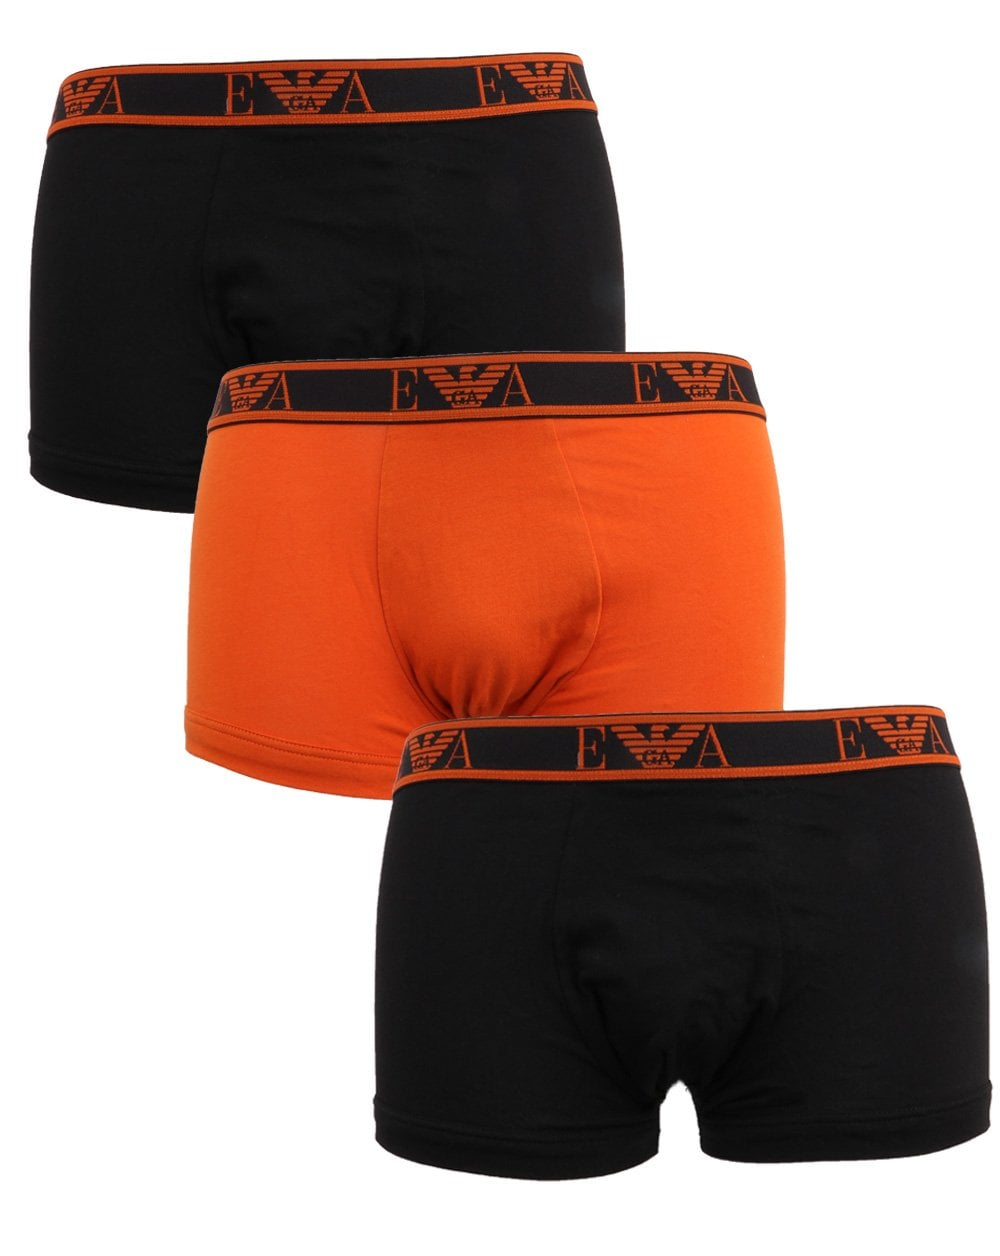 low price sale offer discounts new collection Emporio Armani 3 Pack Boxer Shorts Black/orange